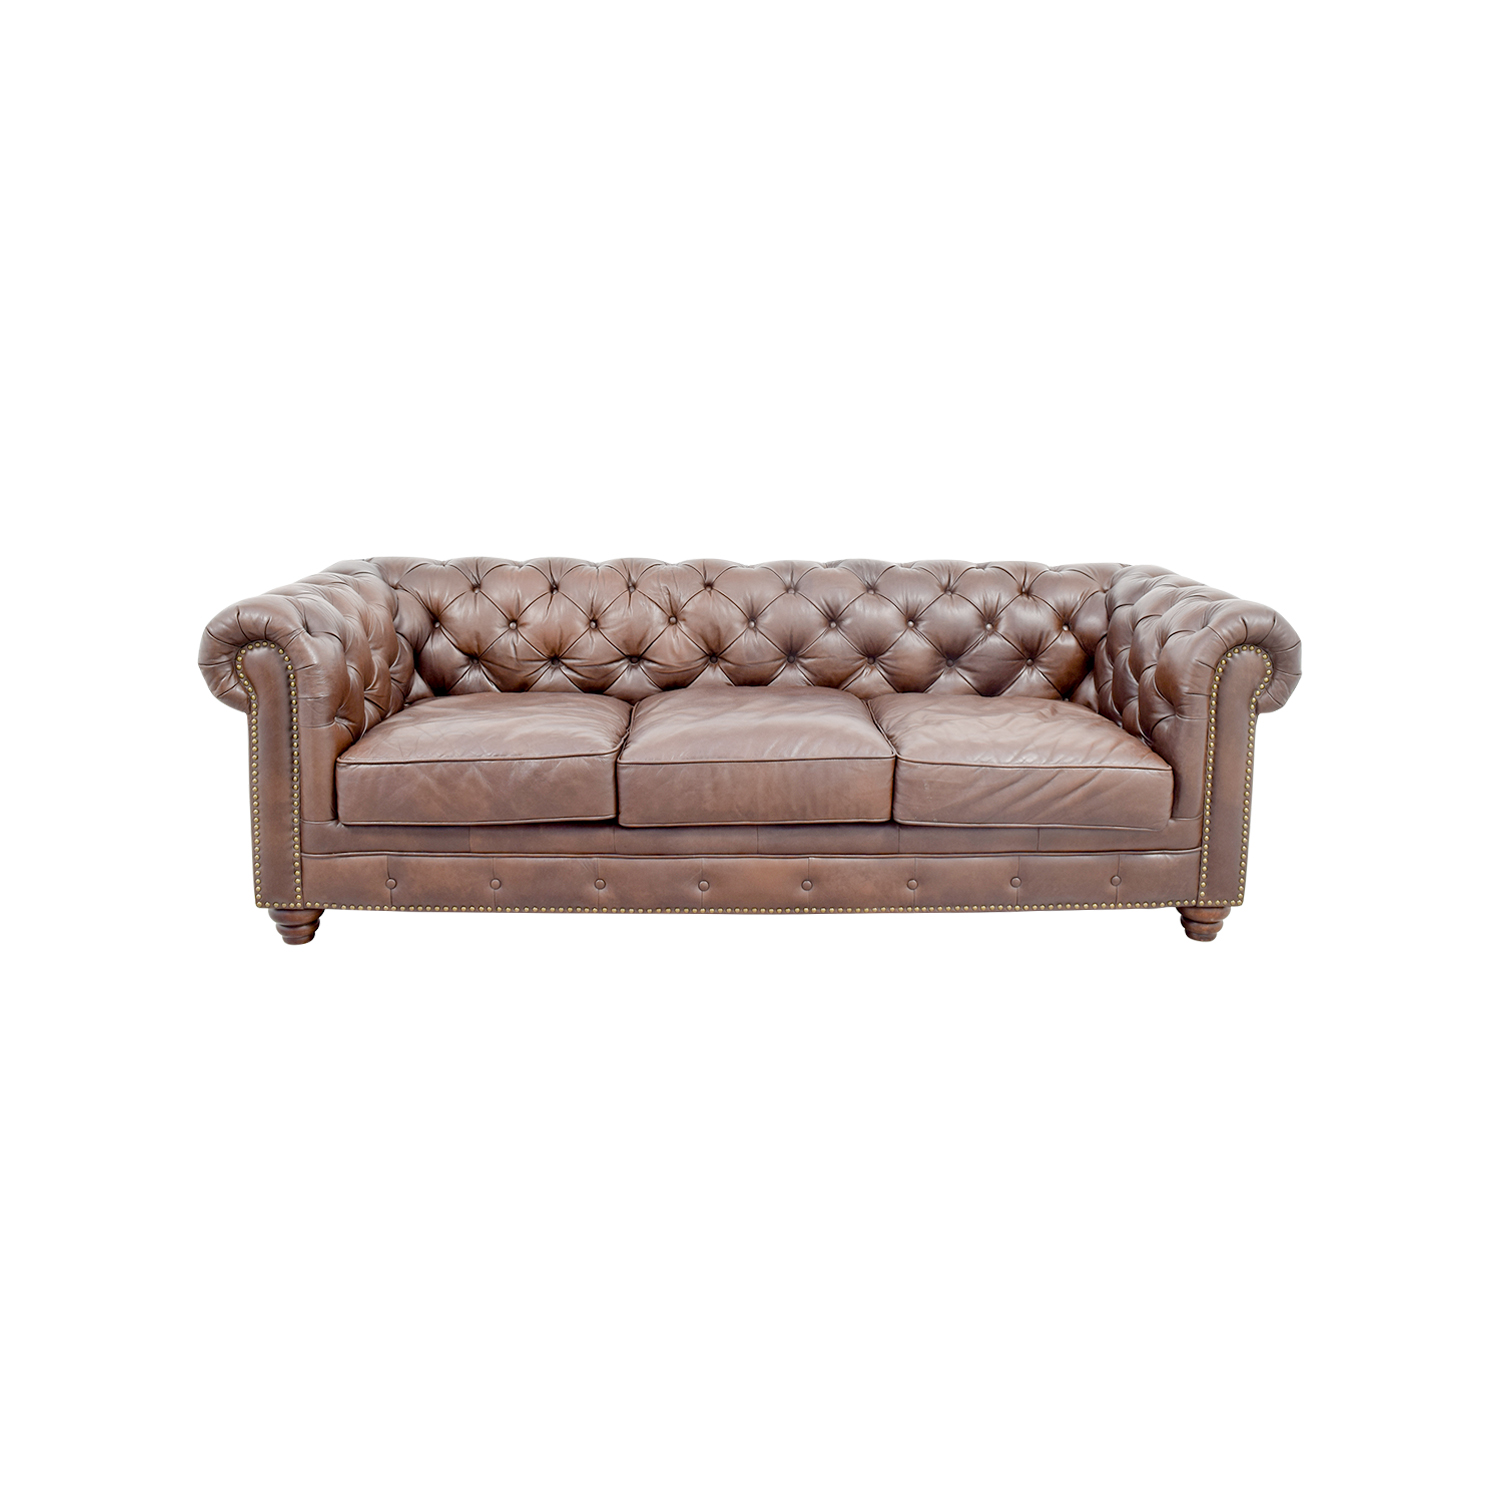 Raymour Flanigan Bellanest Saddler Tufted Leather Sofa Clic